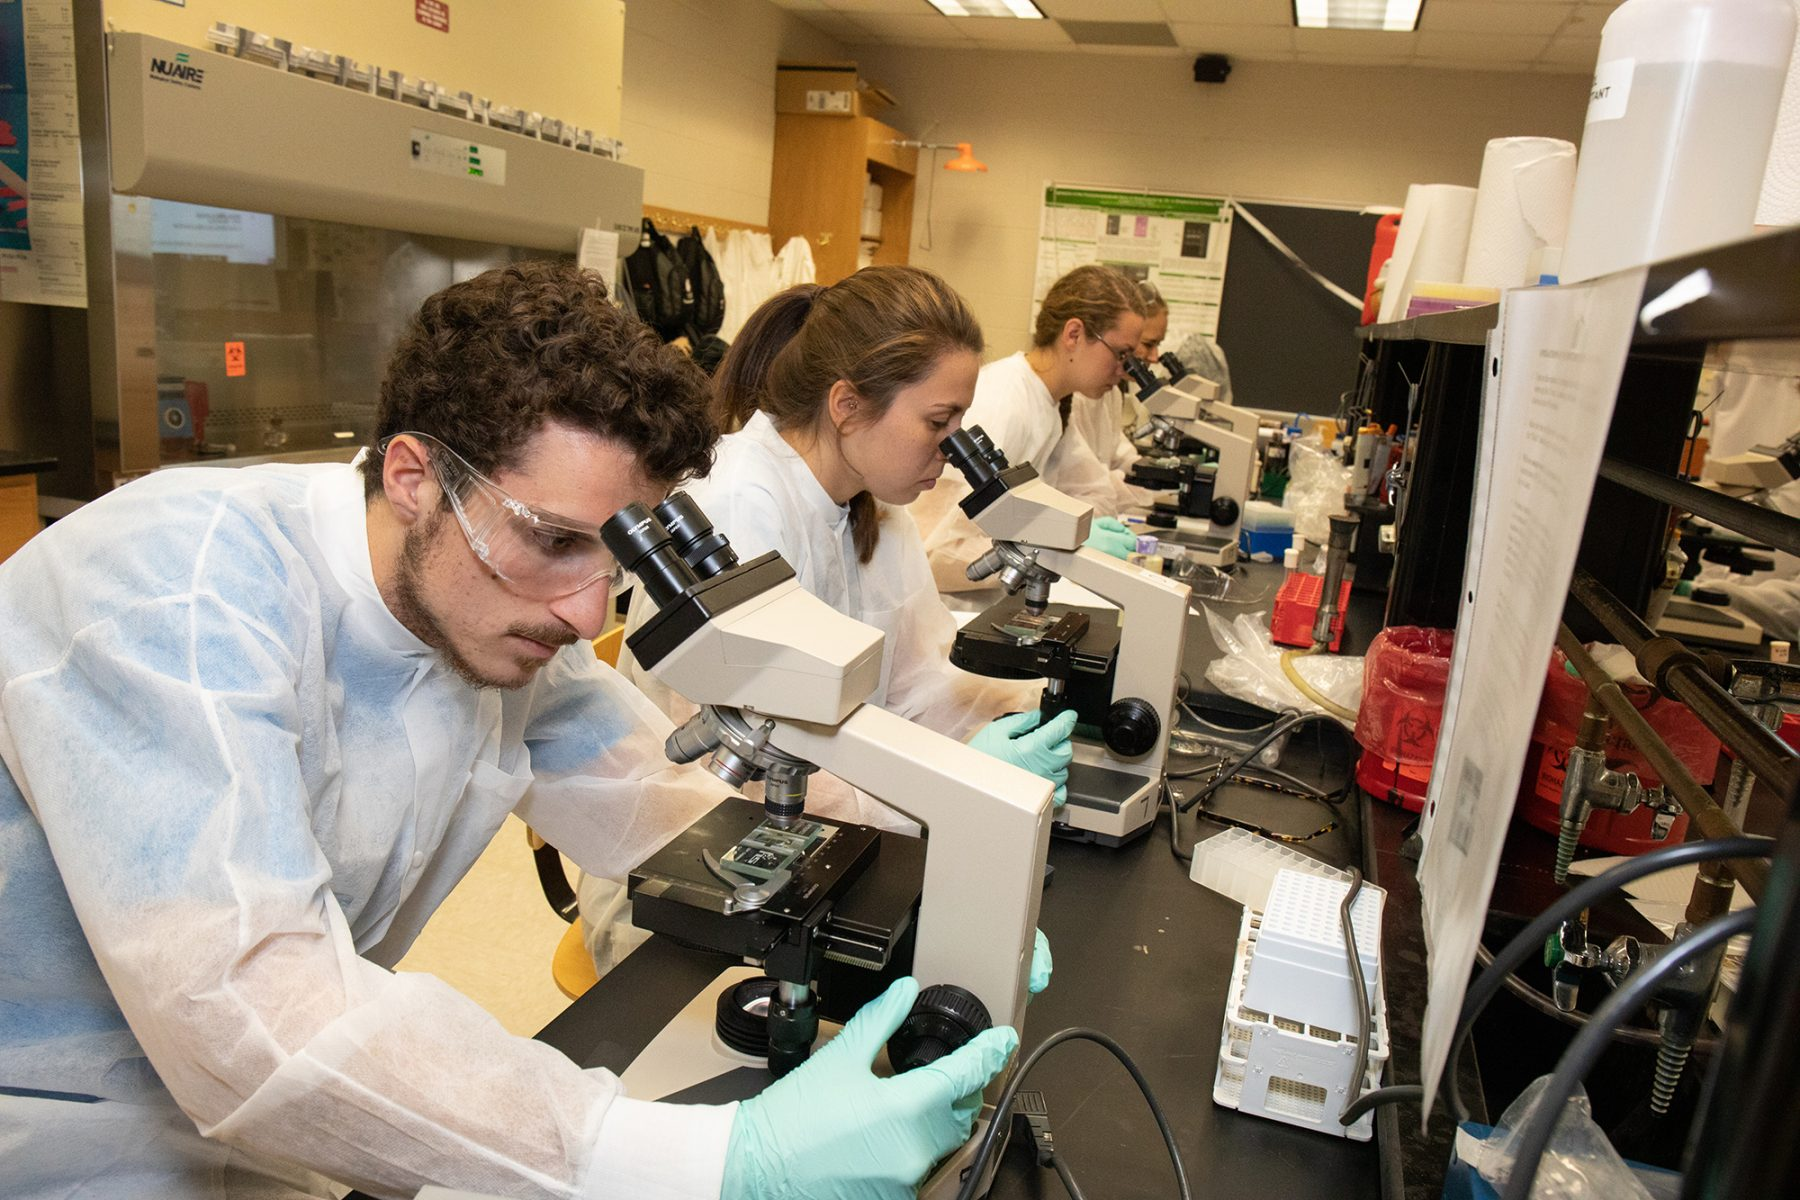 Students using microscopes in Professor Baron's Biology class